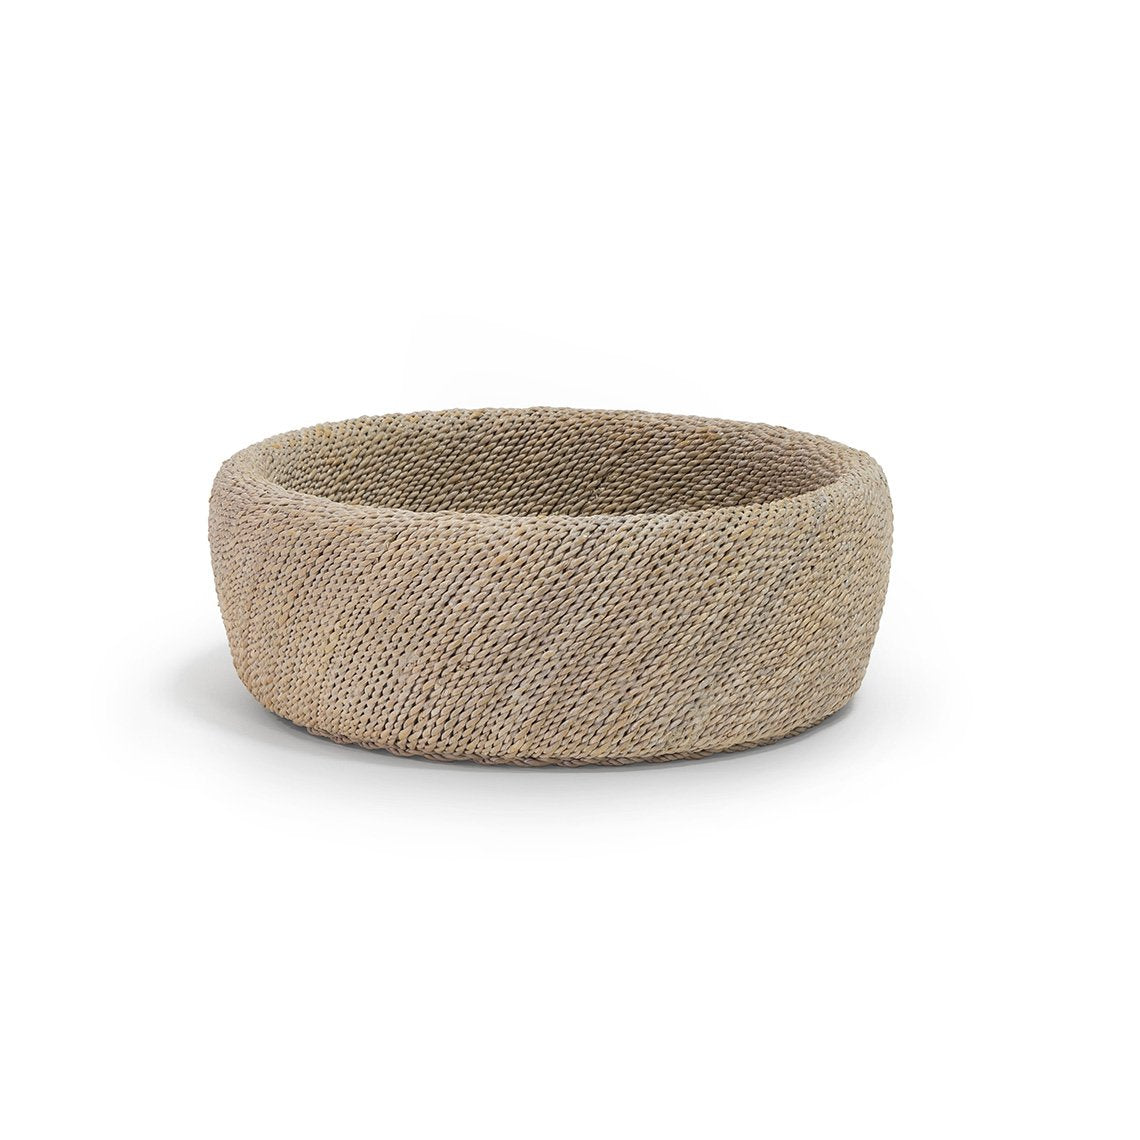 Nia Rope Bowl, Small